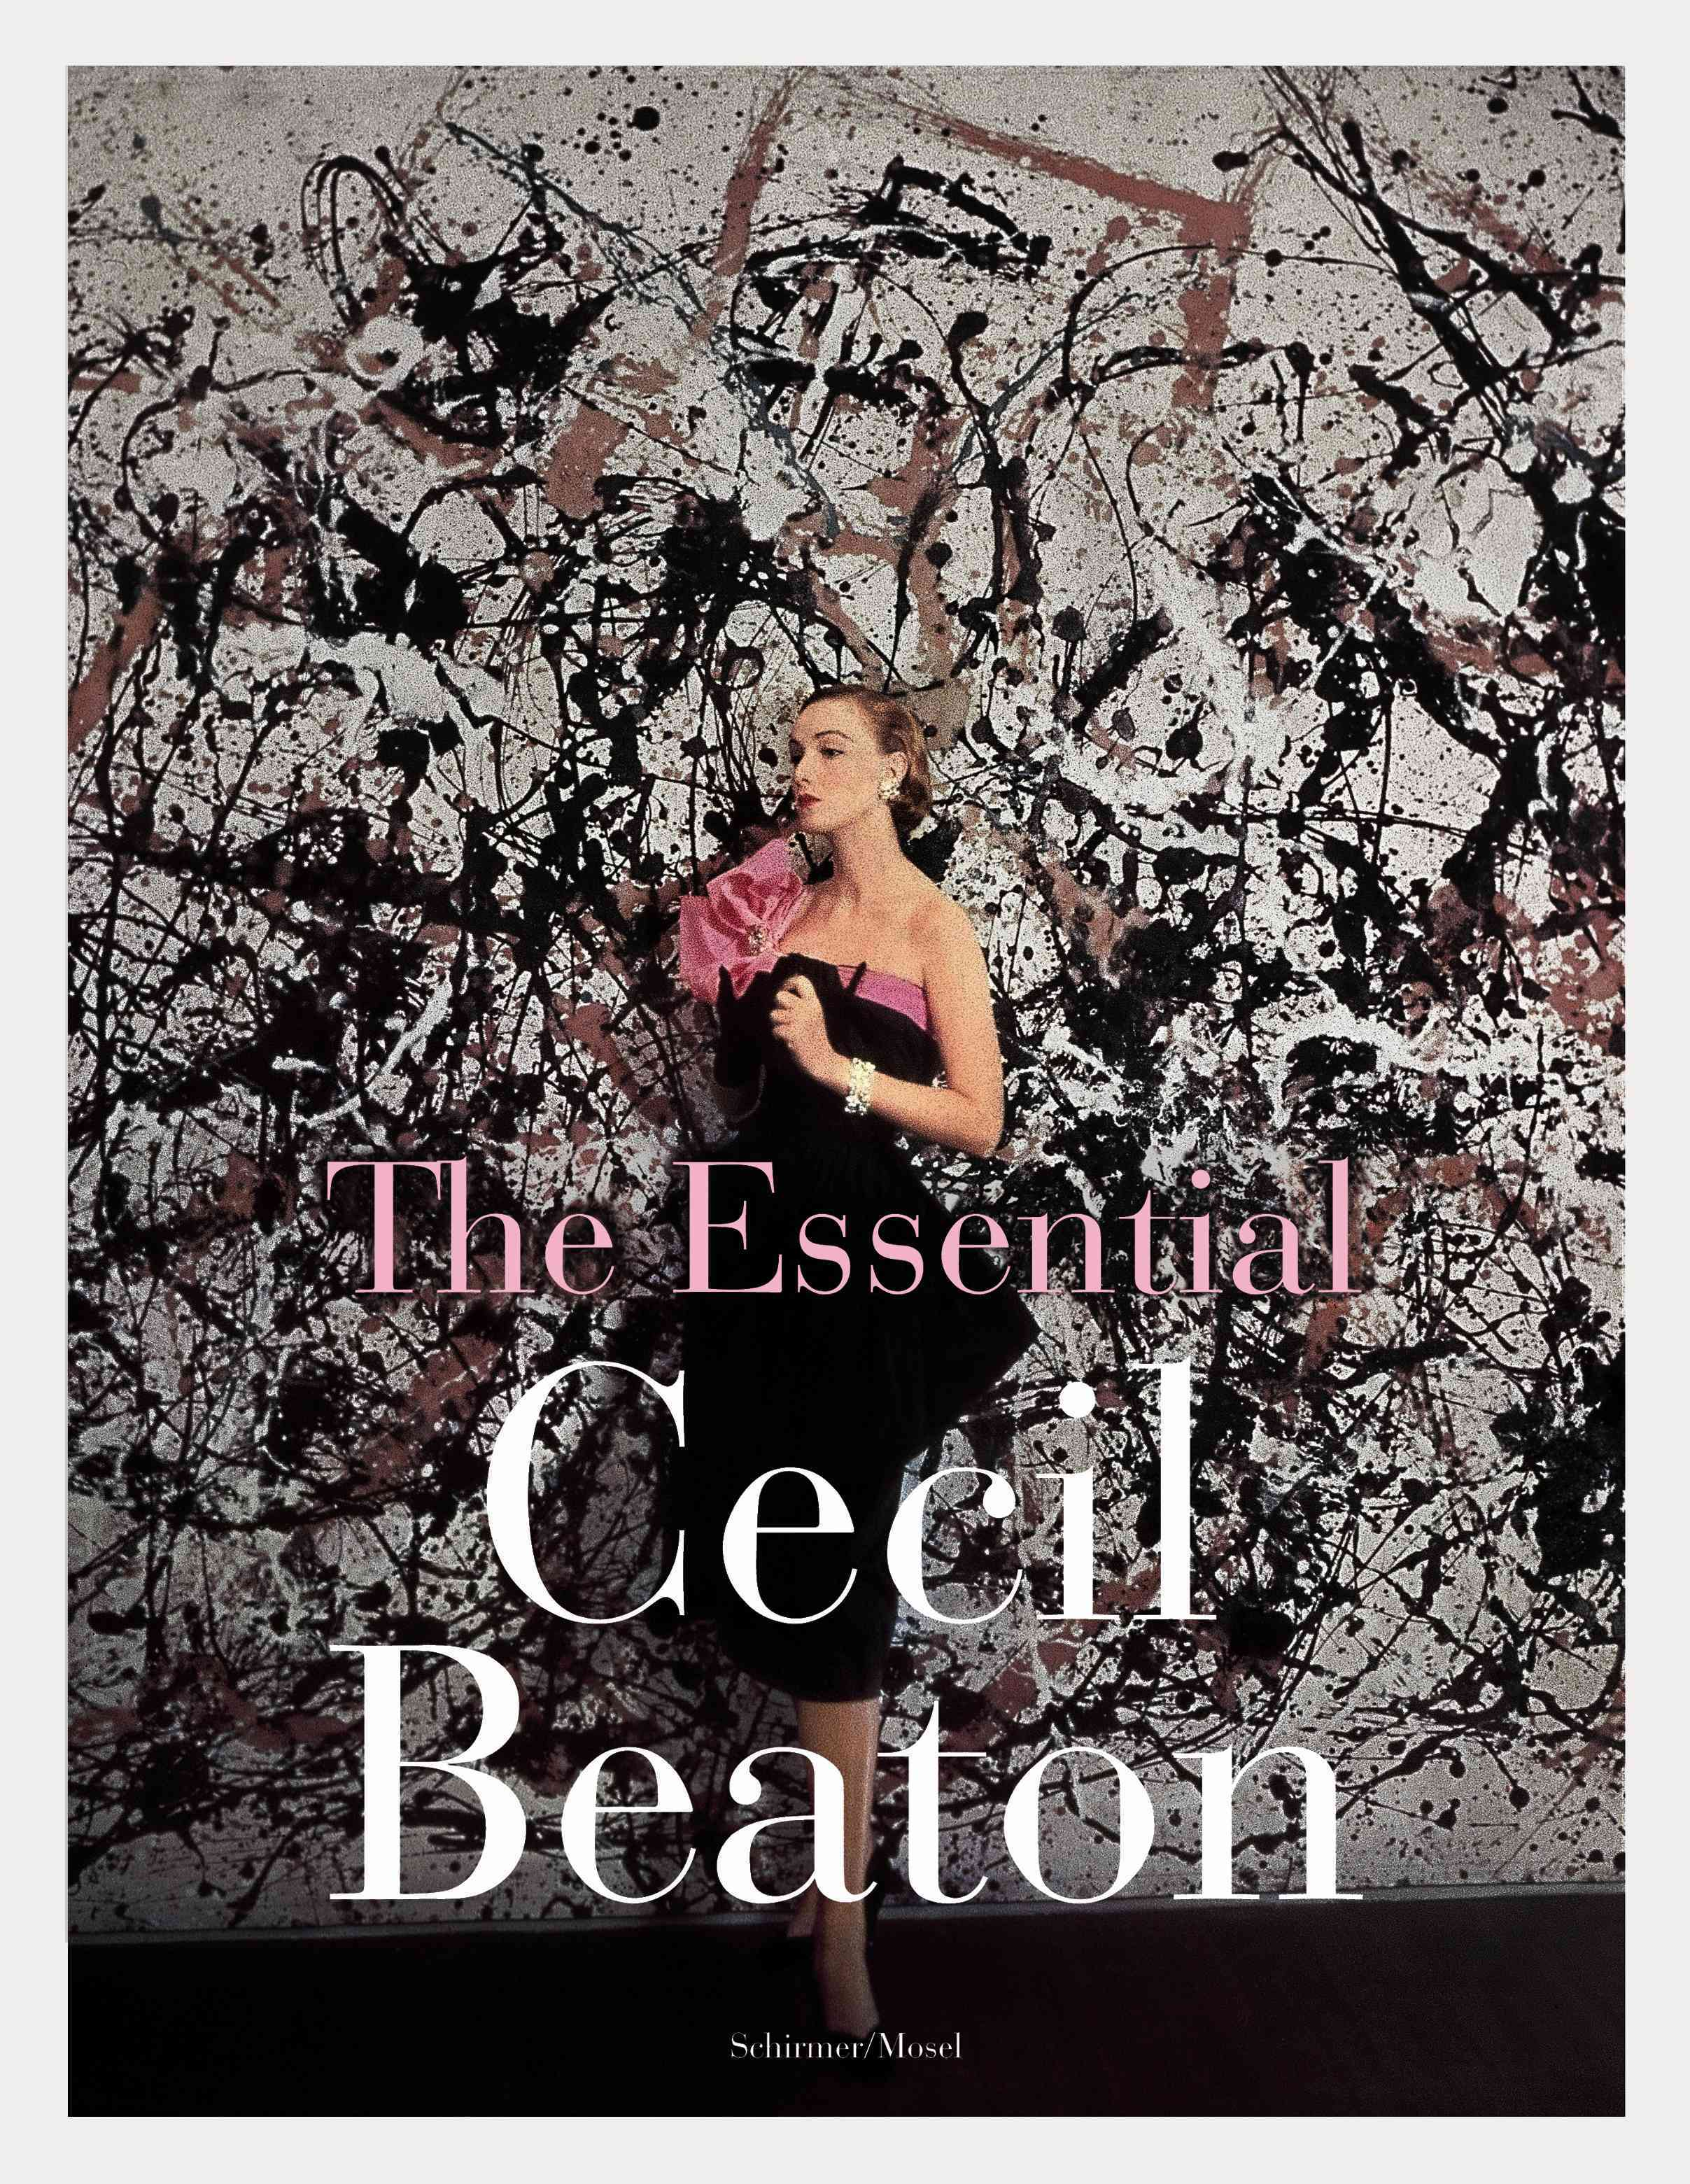 The Essential Cecil Beaton: Photographs 1920-1970 (Hardcover)